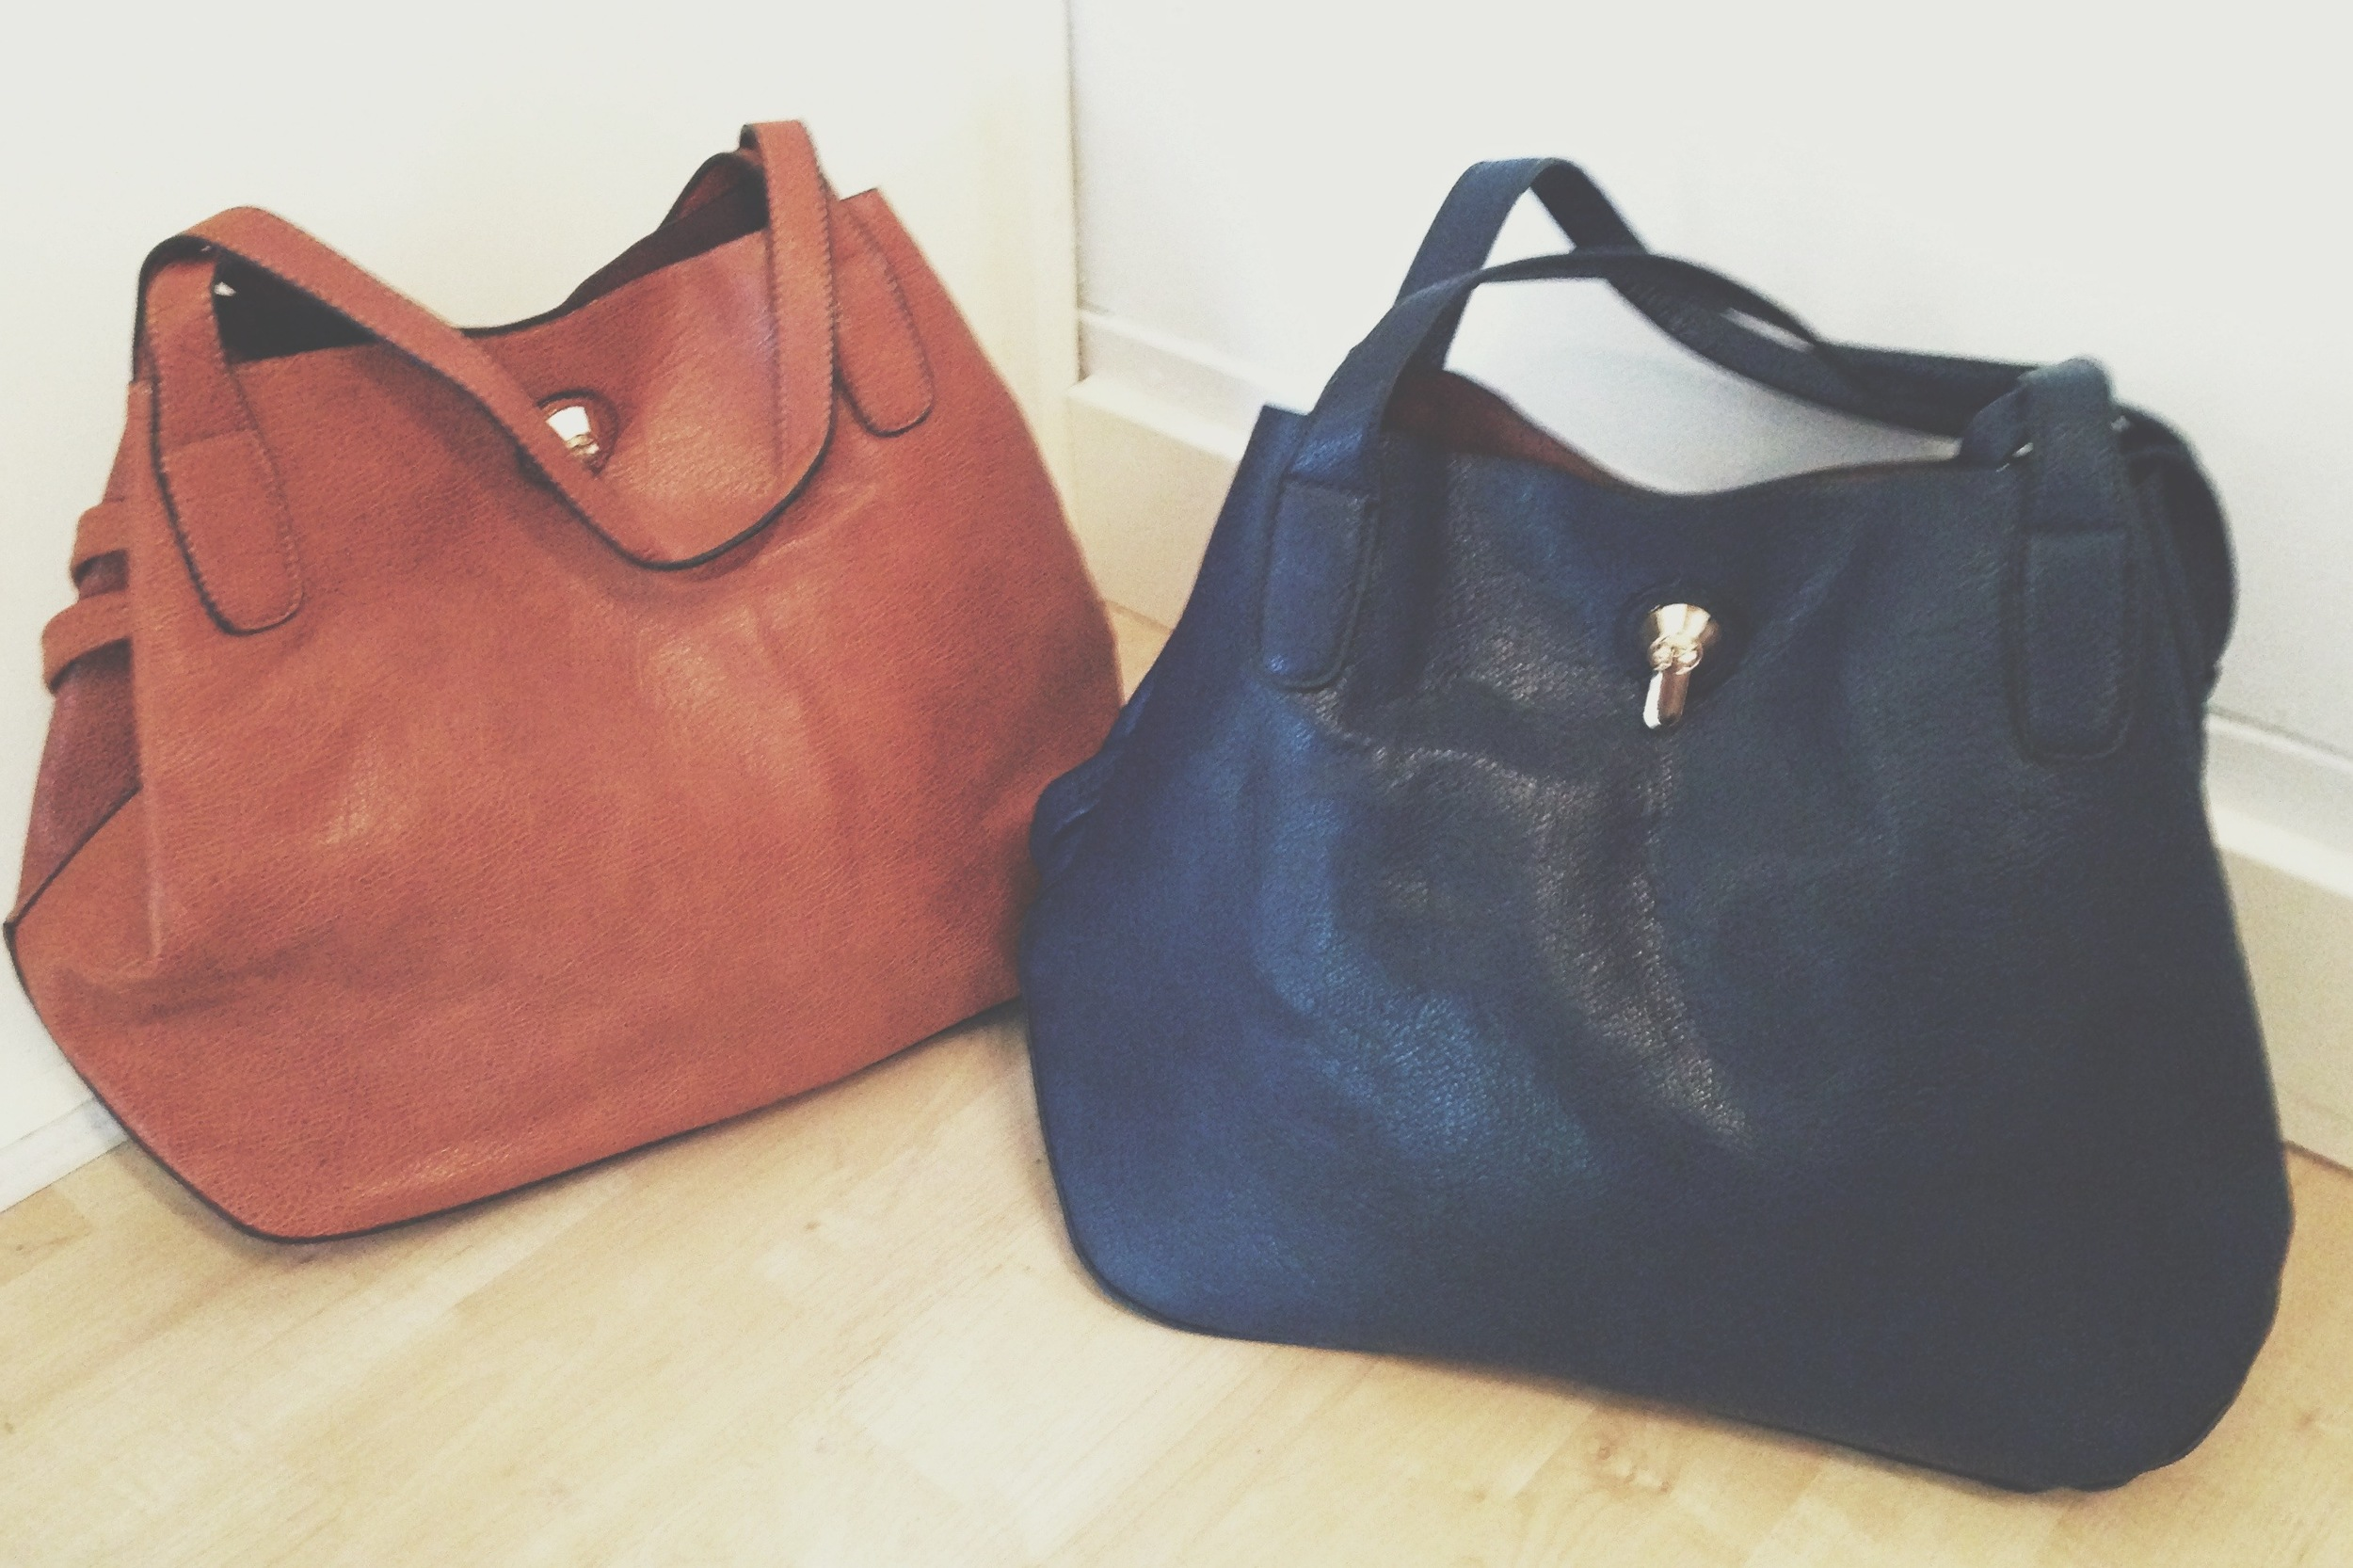 These purses are adorable, and they come with cross-body strap!